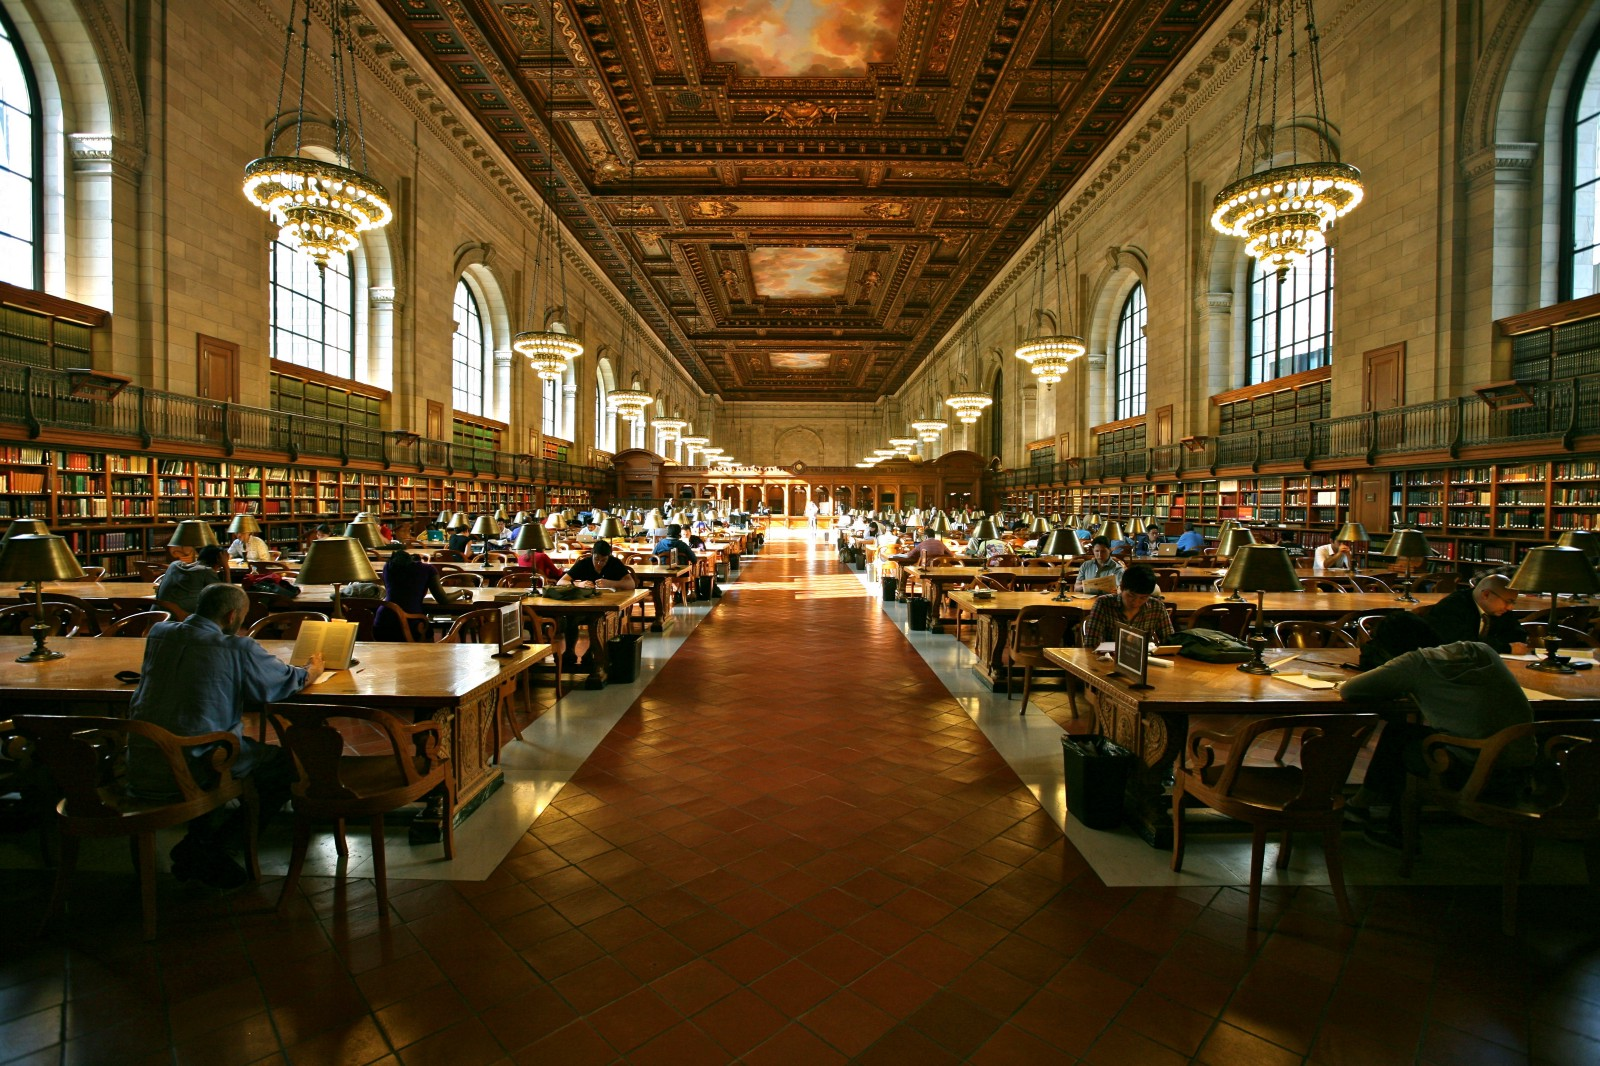 Alex Proimos — New York Public Library Grand Study Hall (CC BY 2.0)